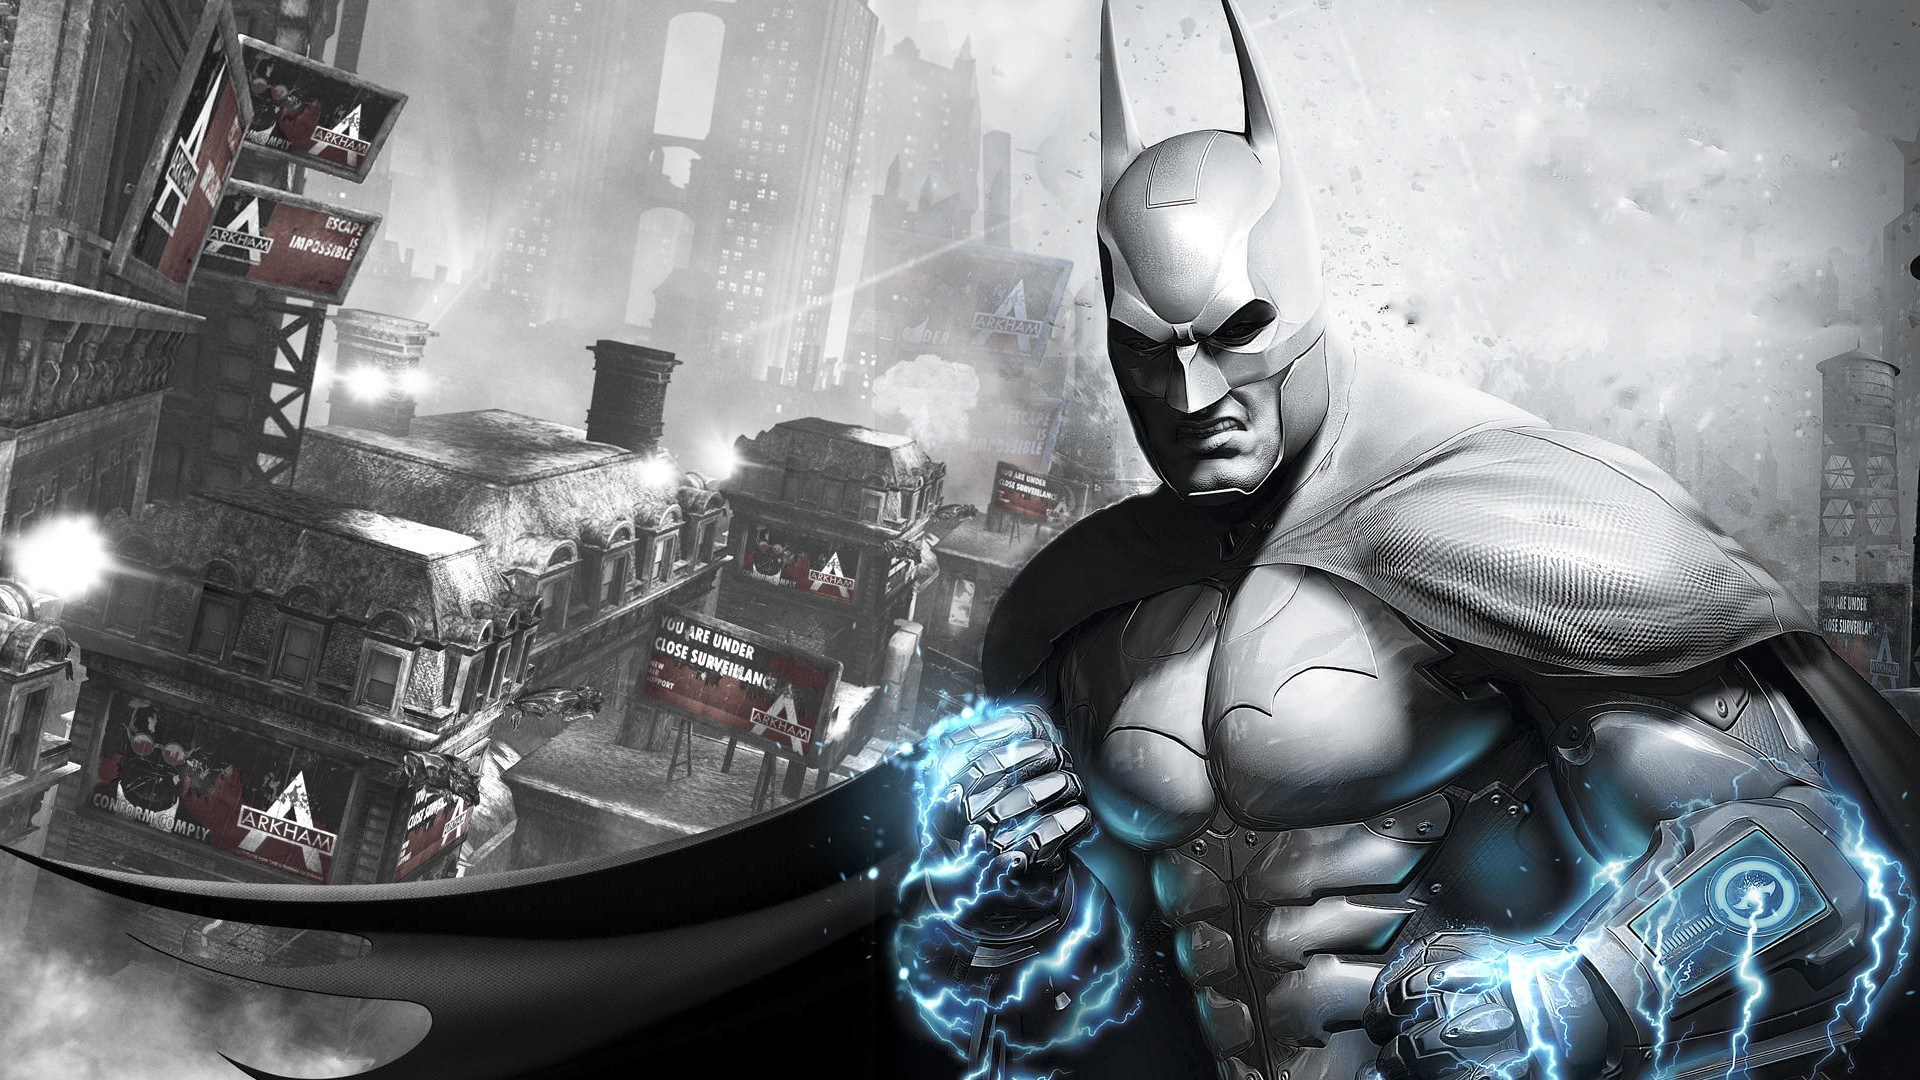 Wallpapers Of Games HD